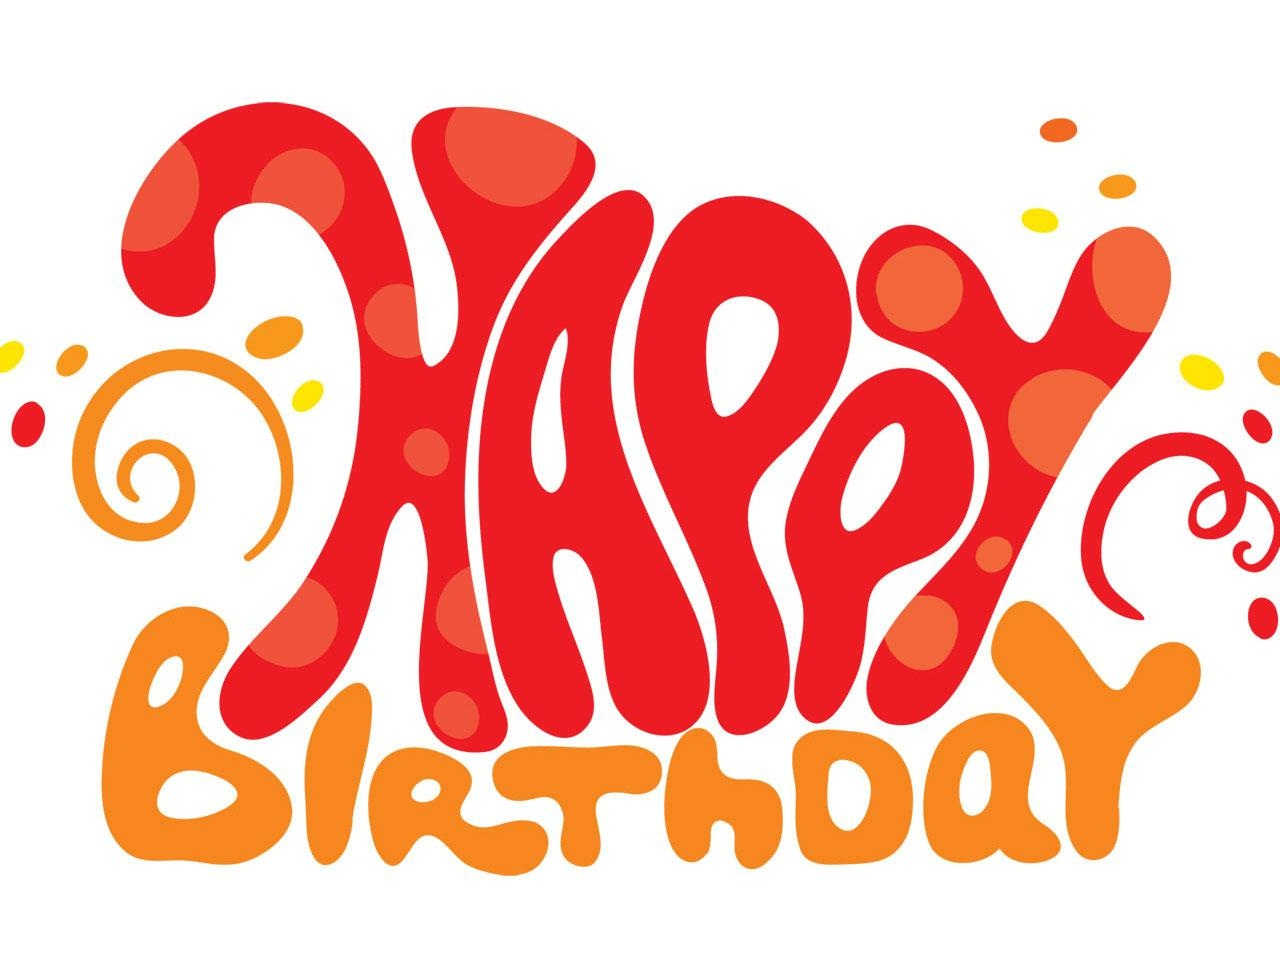 http://4.bp.blogspot.com/-uIY2BmHPlDA/TwBY2RaRBzI/AAAAAAAAApg/weK7PEHwavY/s1600/Red-brown-Happy_Birthday_Picture.jpg